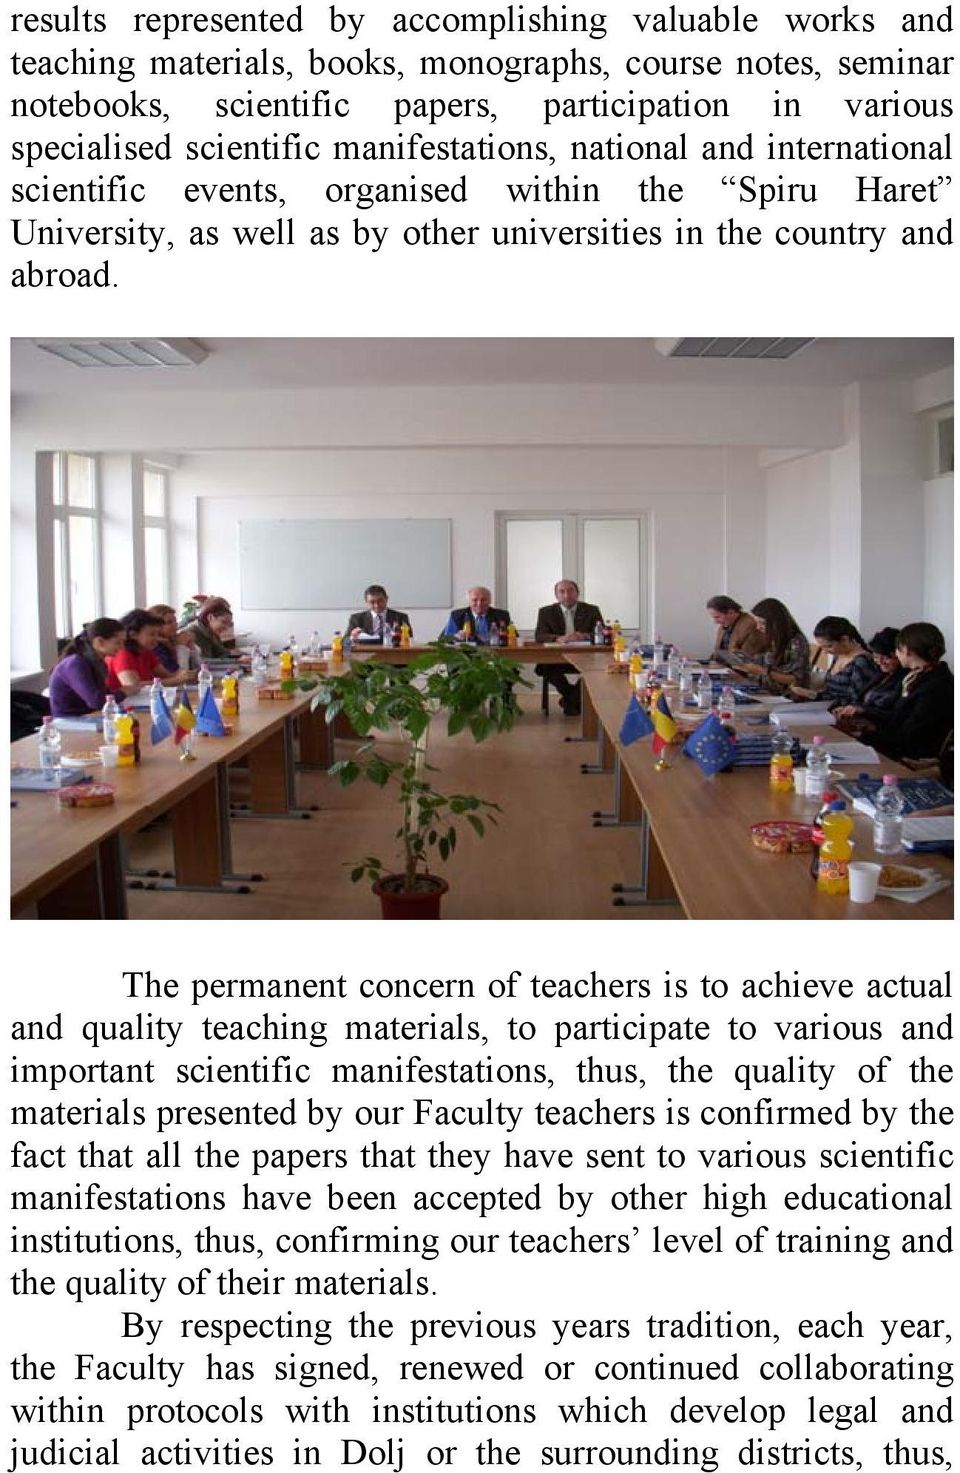 The permanent concern of teachers is to achieve actual and quality teaching materials, to participate to various and important scientific manifestations, thus, the quality of the materials presented